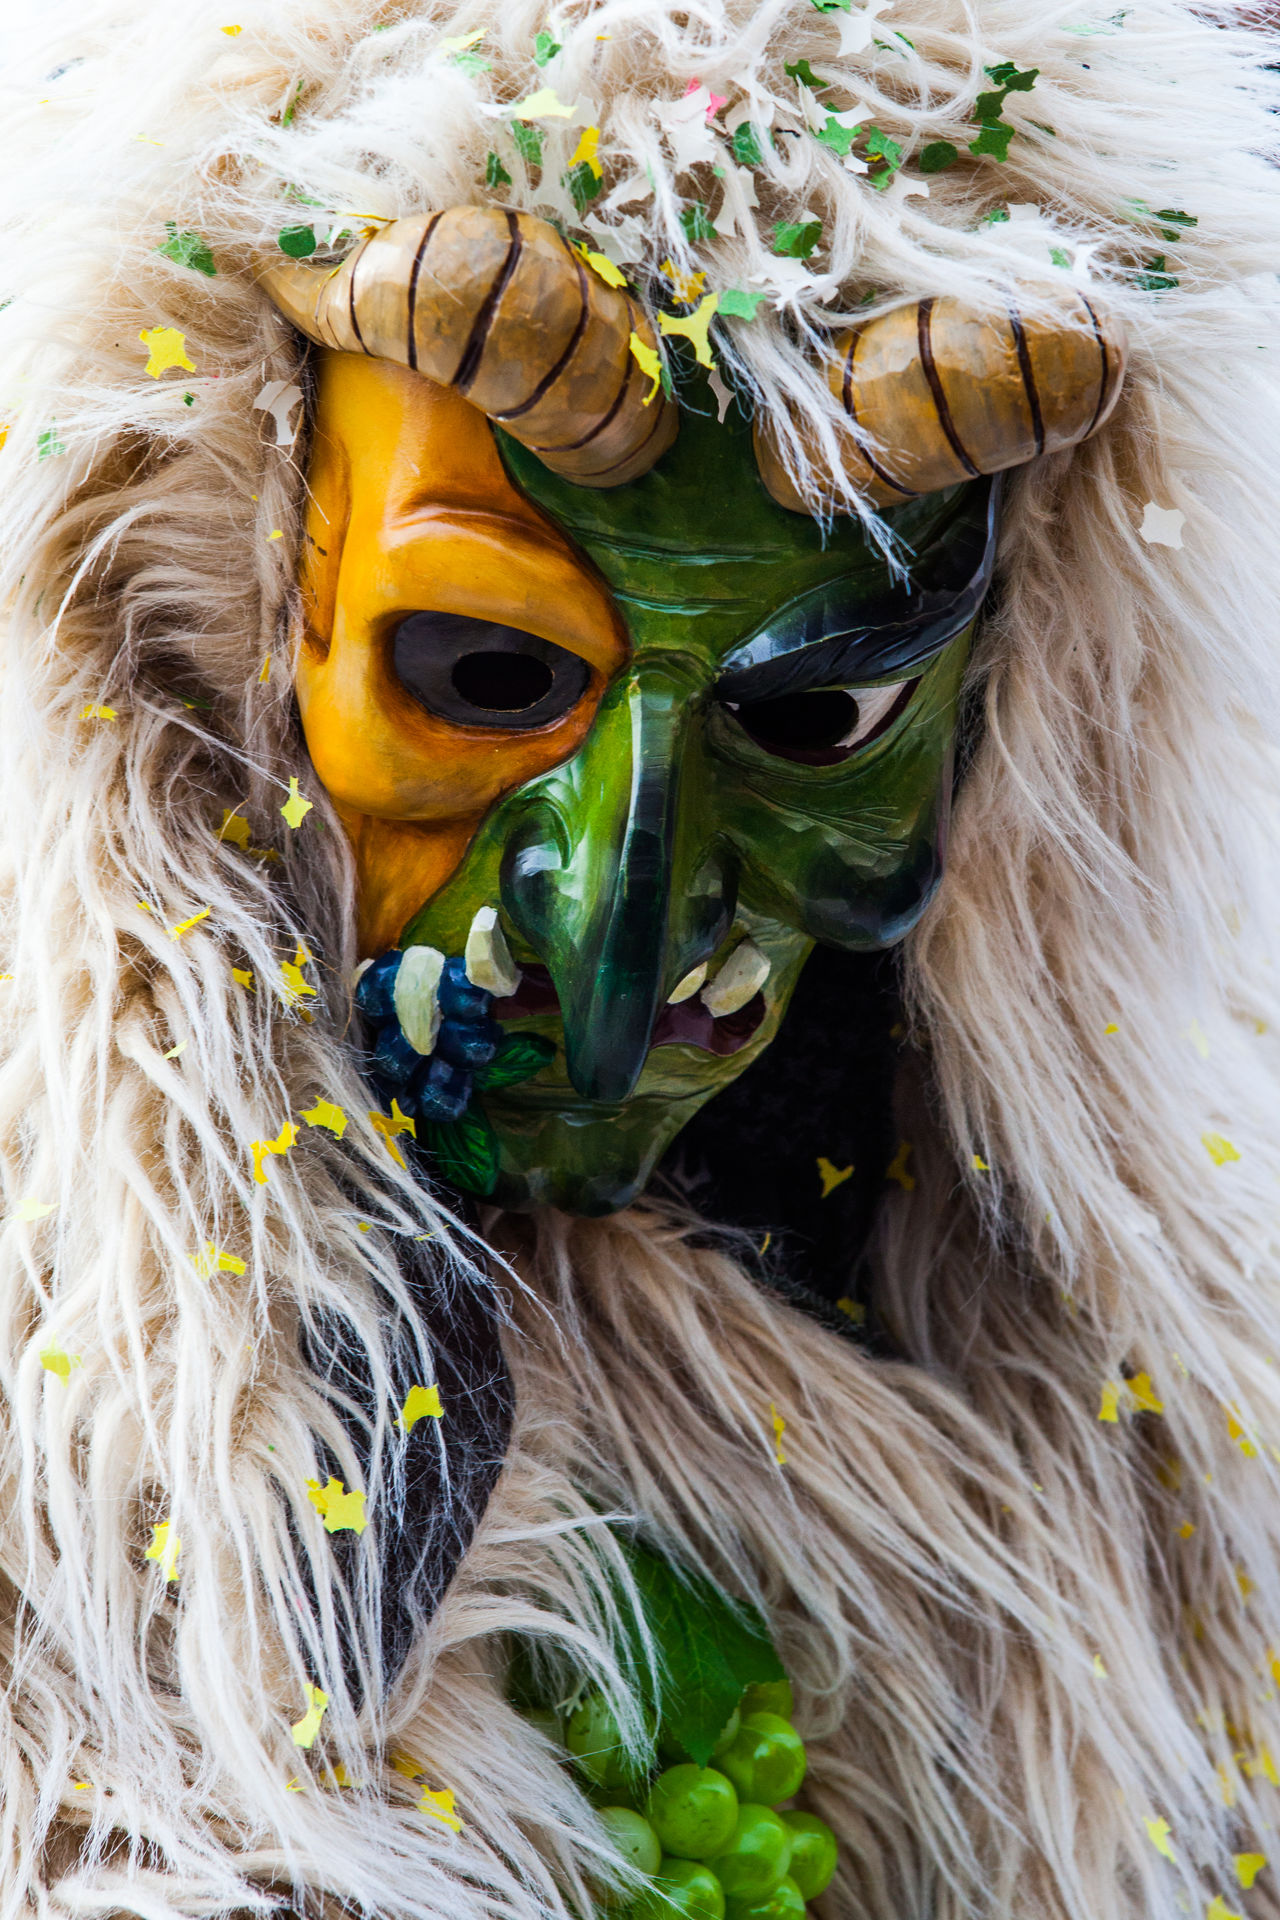 Carnival Crowds And Details Close-up Confetti Costume Creepy Dark Fasnacht Fear Furry Mask Monster Morbid Multi Colored Scary Tradition Weird Witch